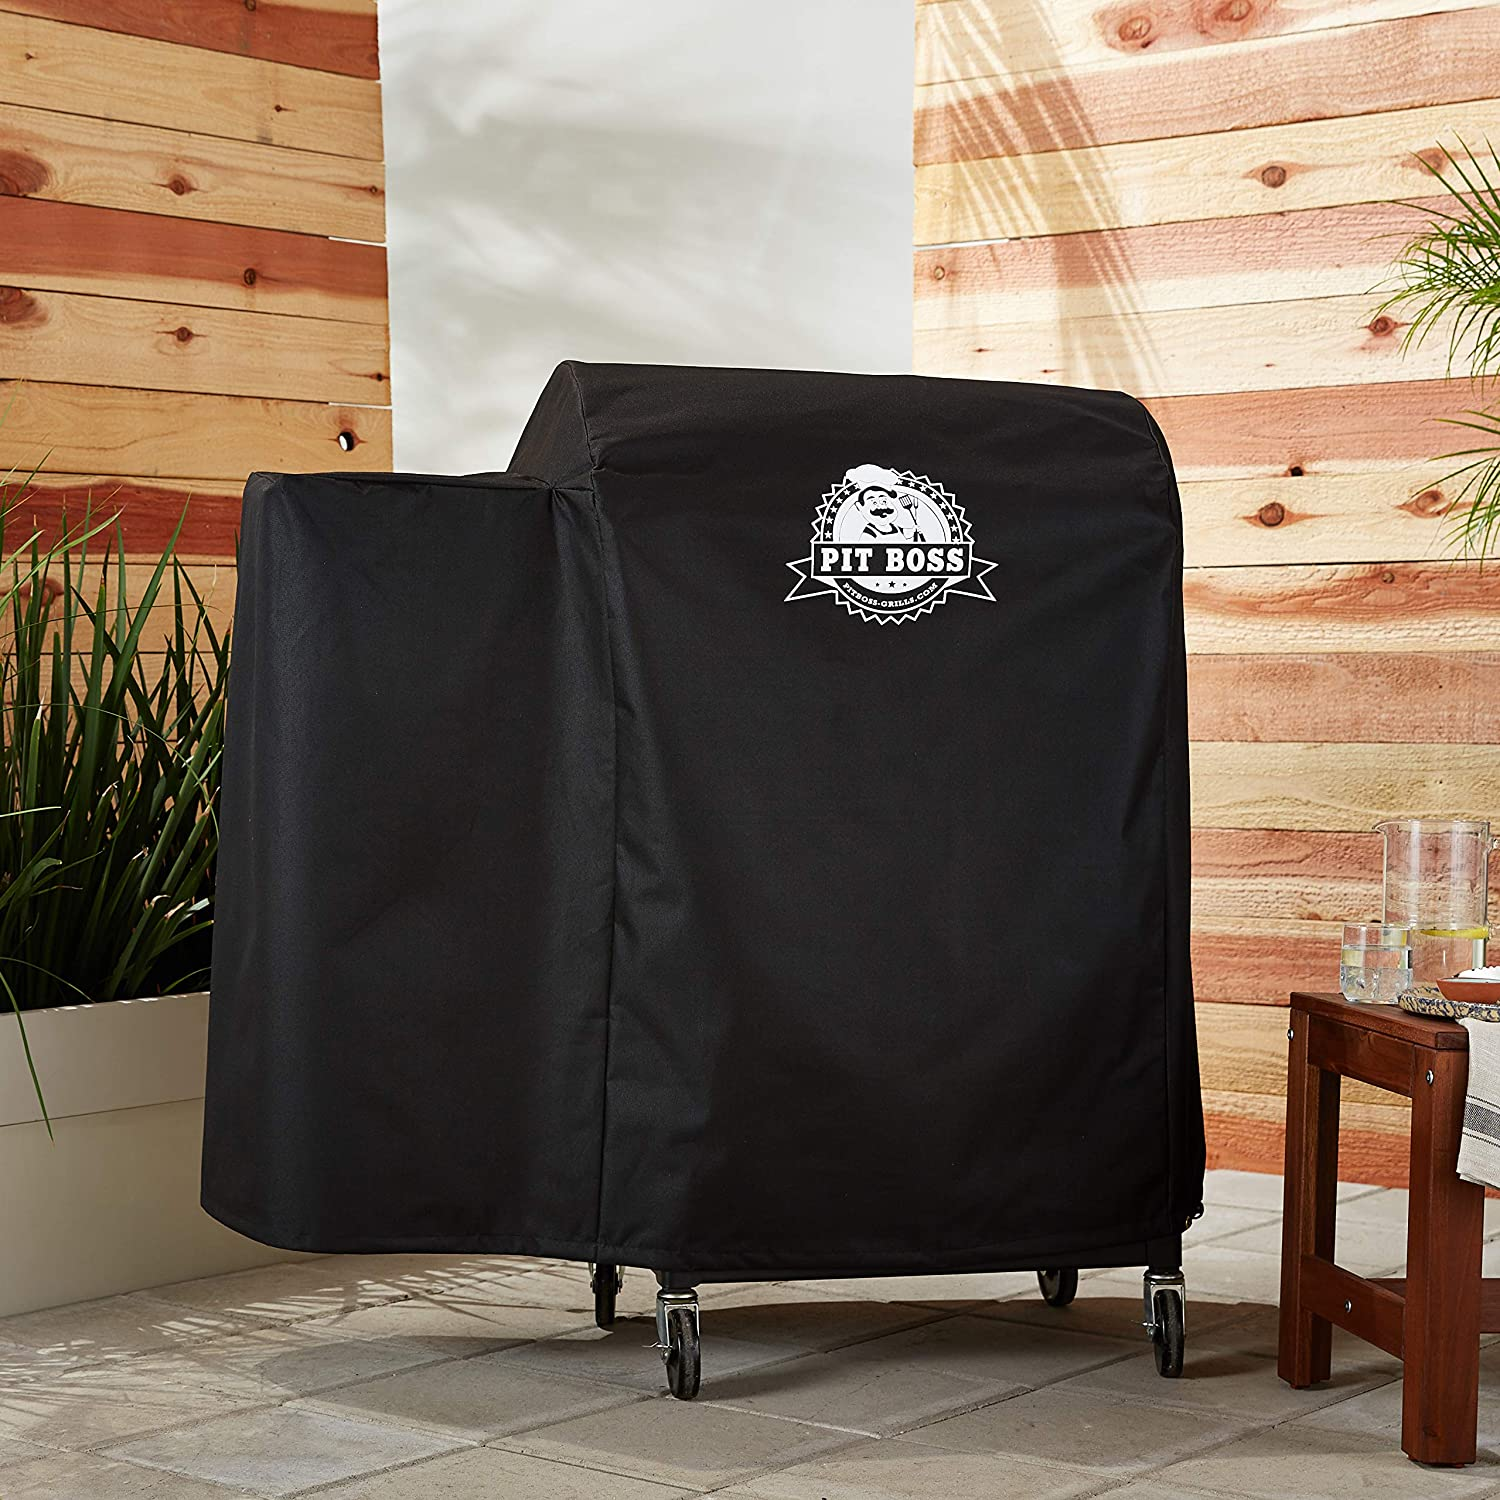 Outdoor Heavy Duty Waterproof Grill Cover for Pit Boss 700FB Wood Pellet Grills